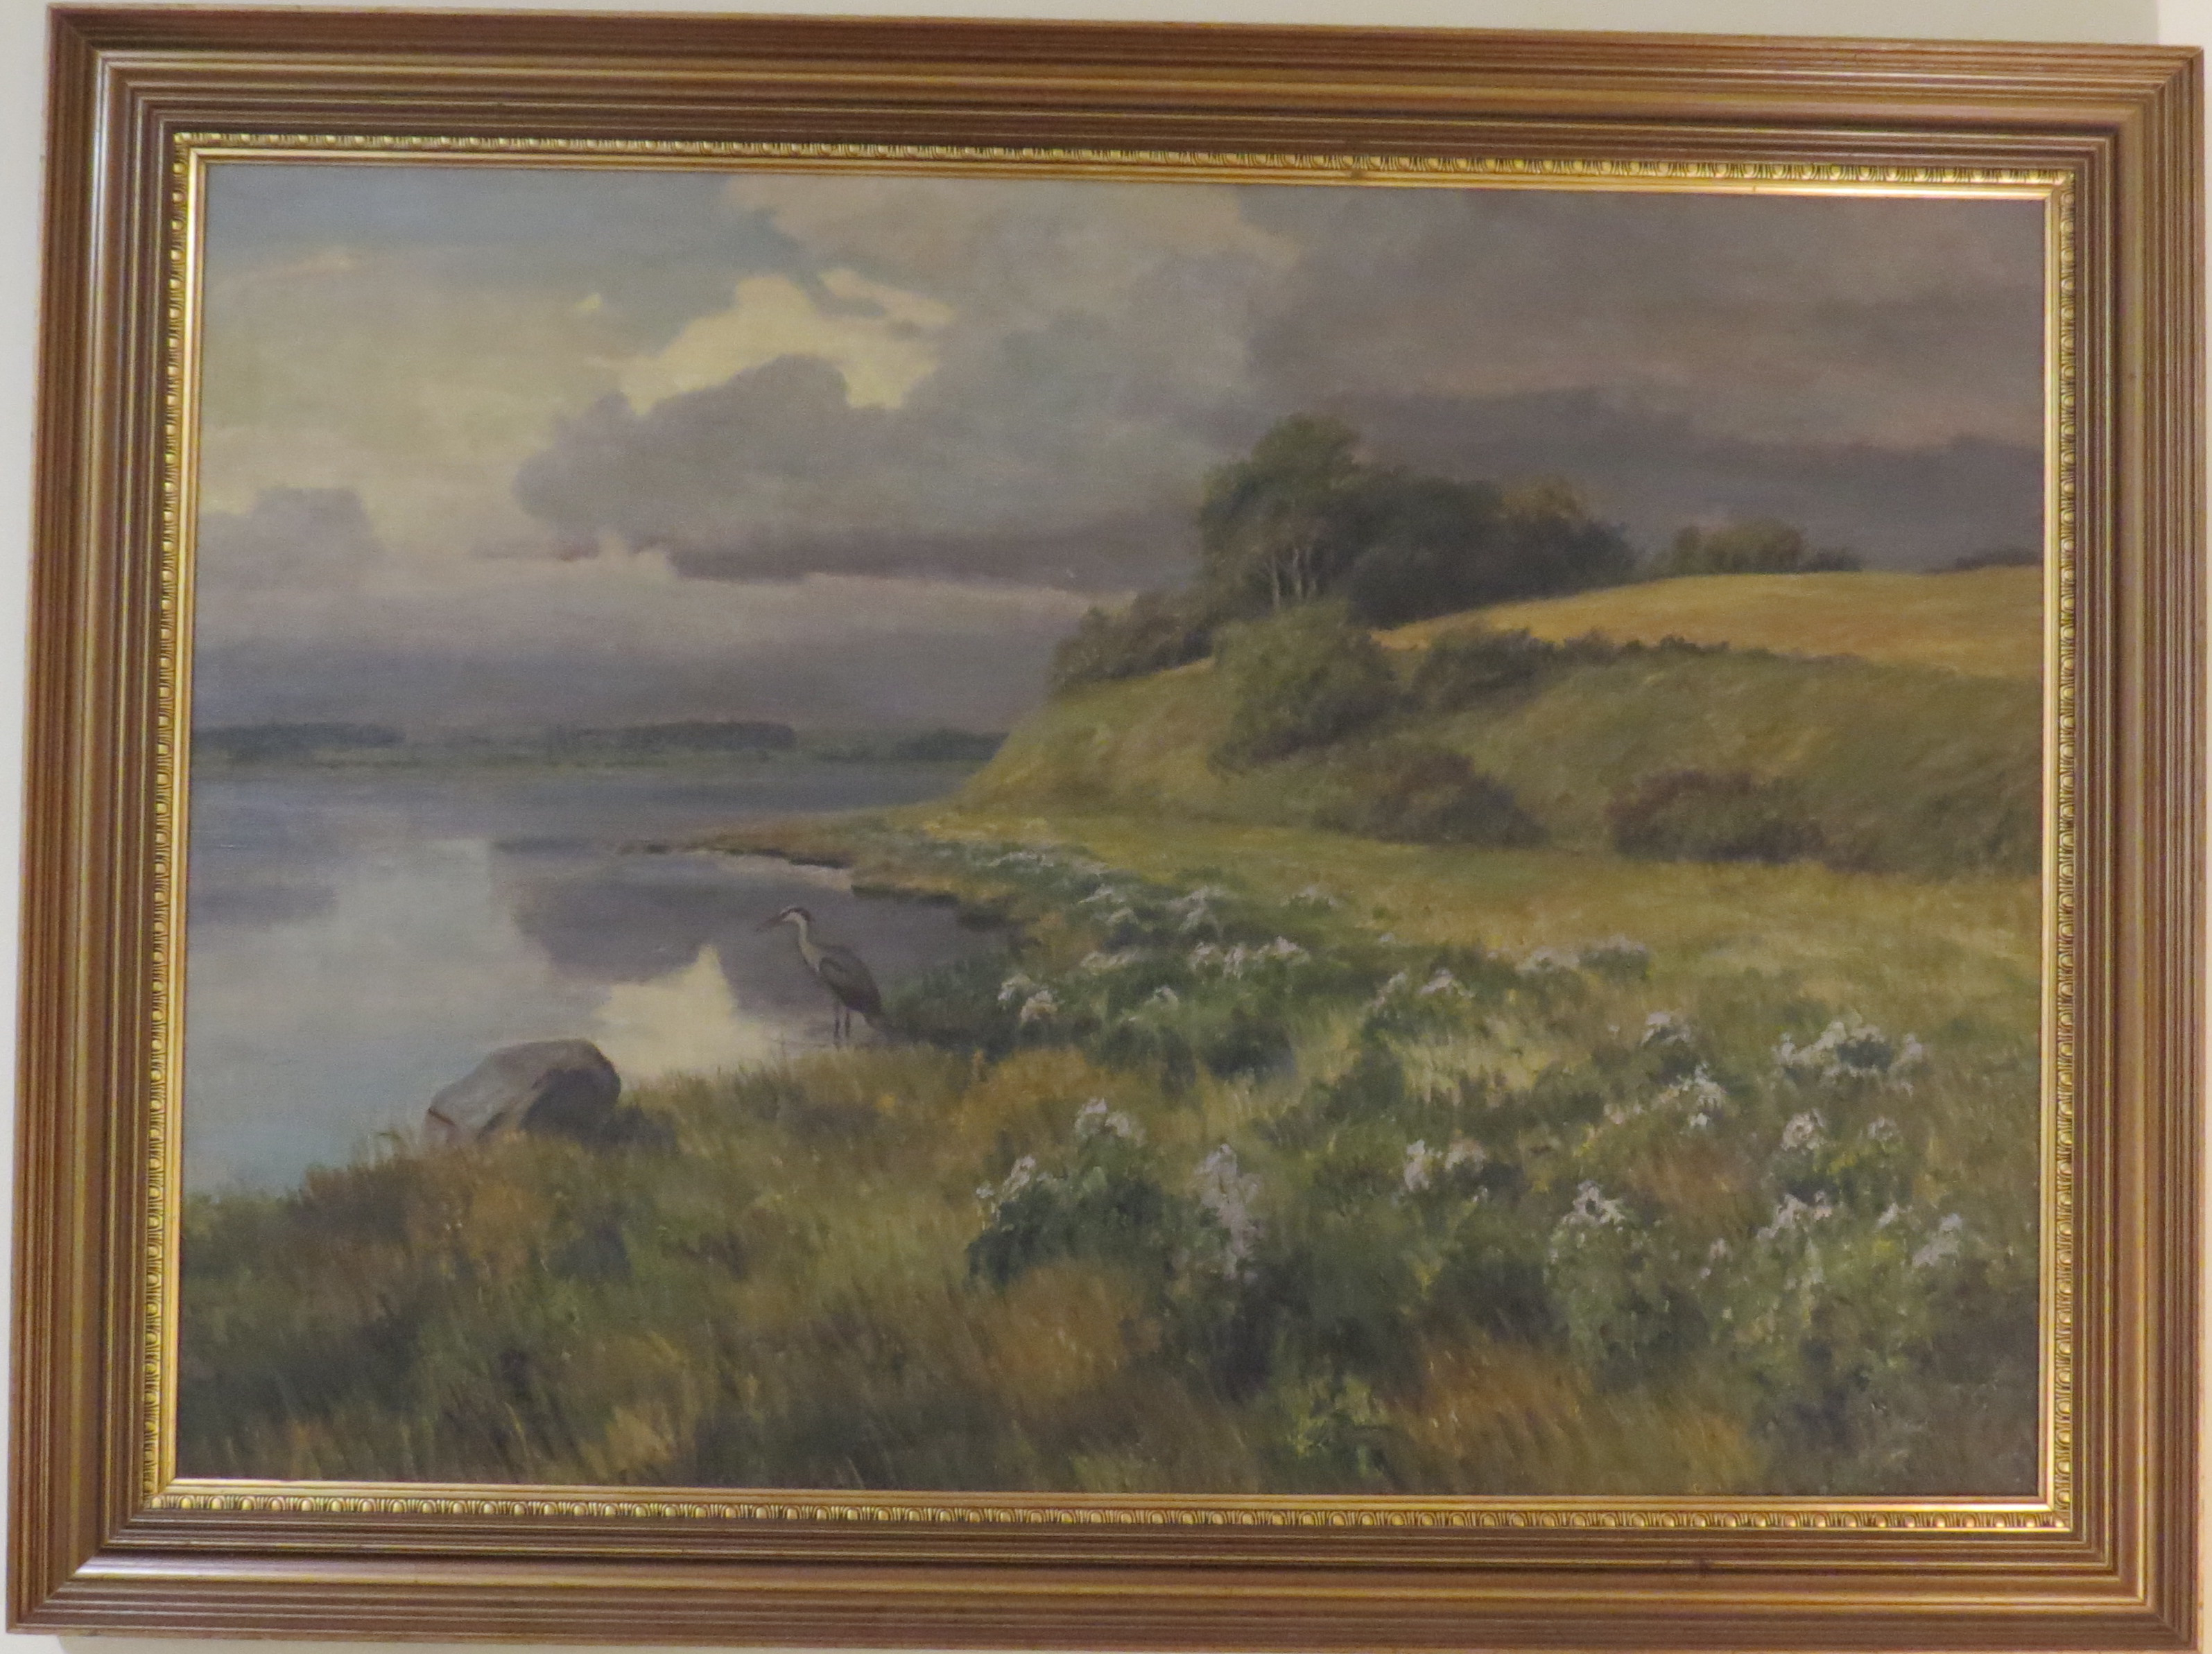 Oil on Canvas of a Landscape Scene with a Heron by a Lake